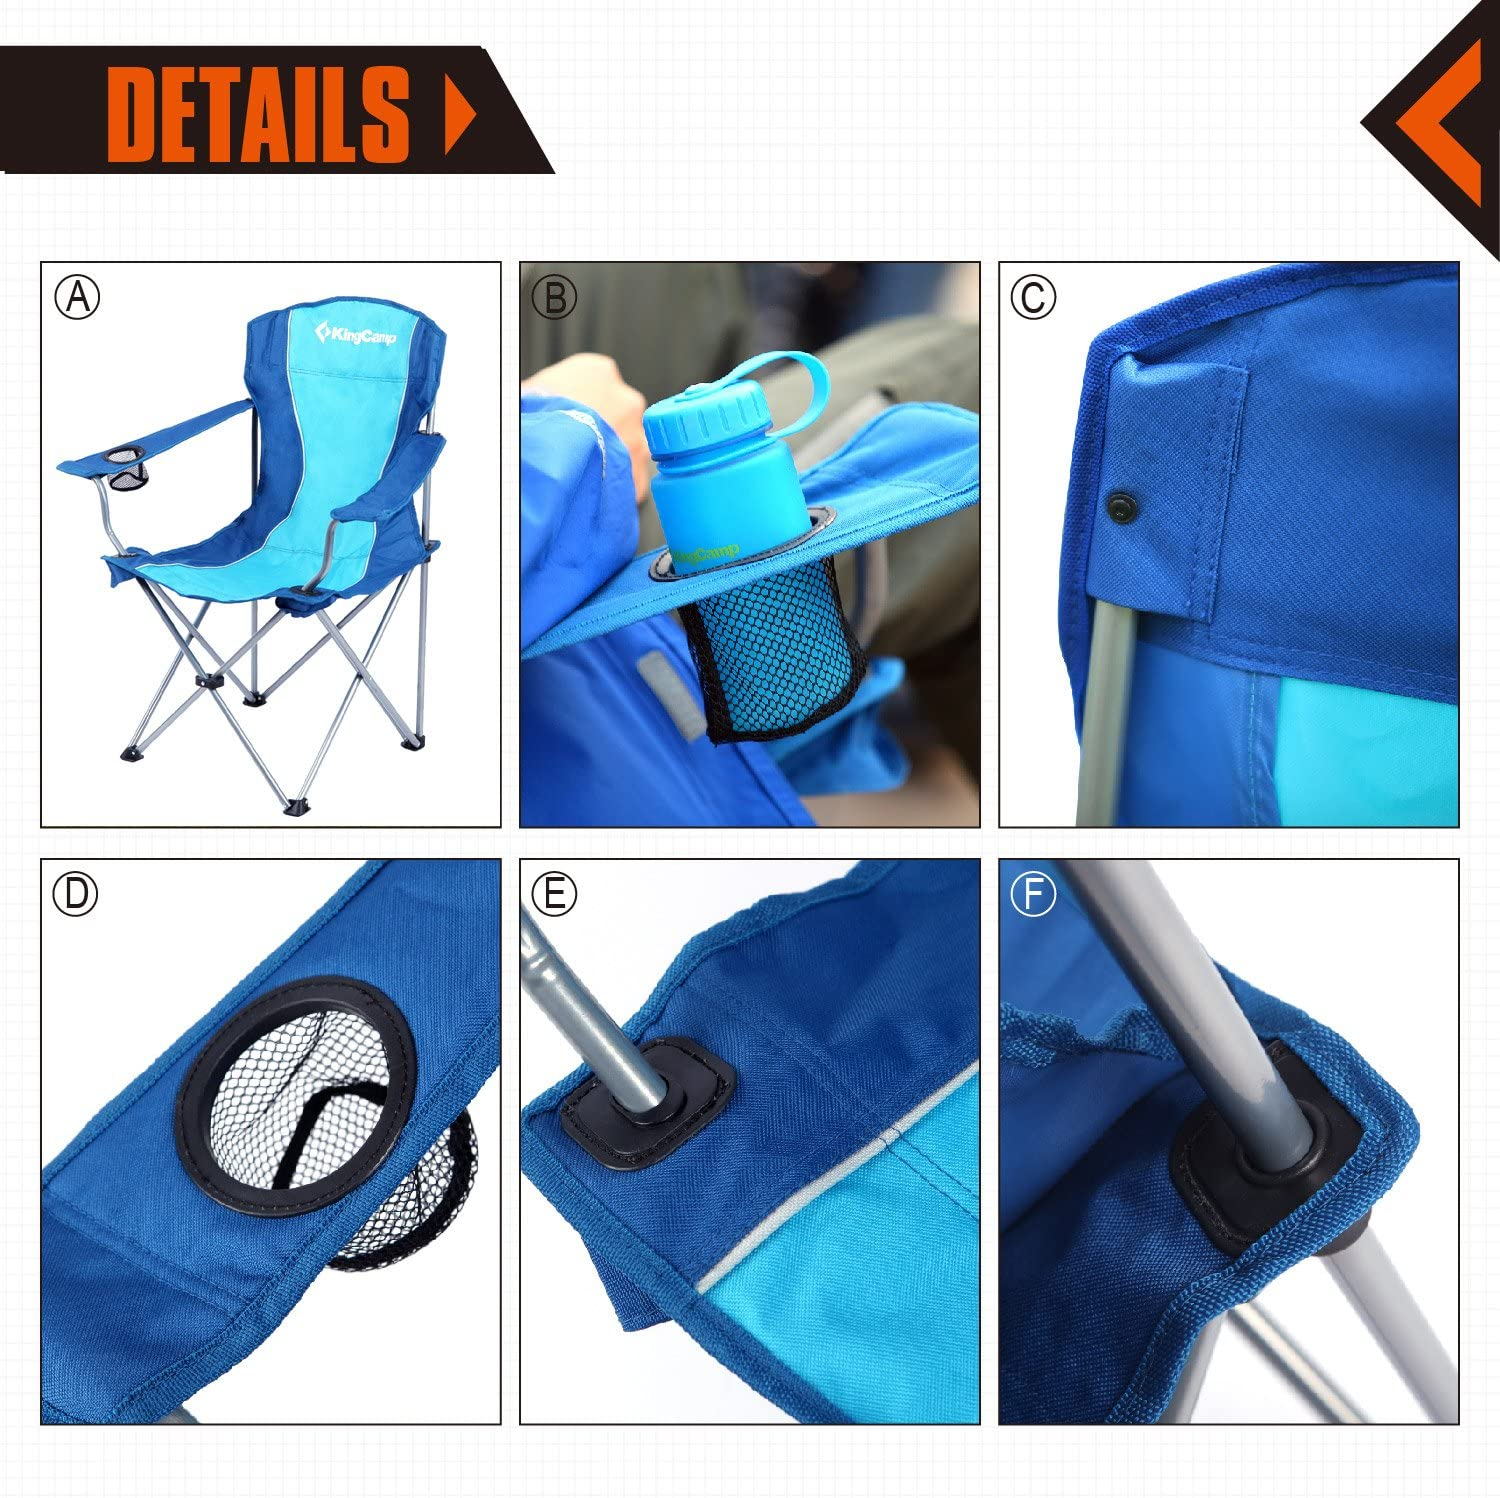 KingCamp Folding Camp Chair Quad Steel Frame with armrest and Mesh Cup Holder Oversized Light Weight Portable Stable for Camping Picnic Backpacking Outdoor with Carry Bag